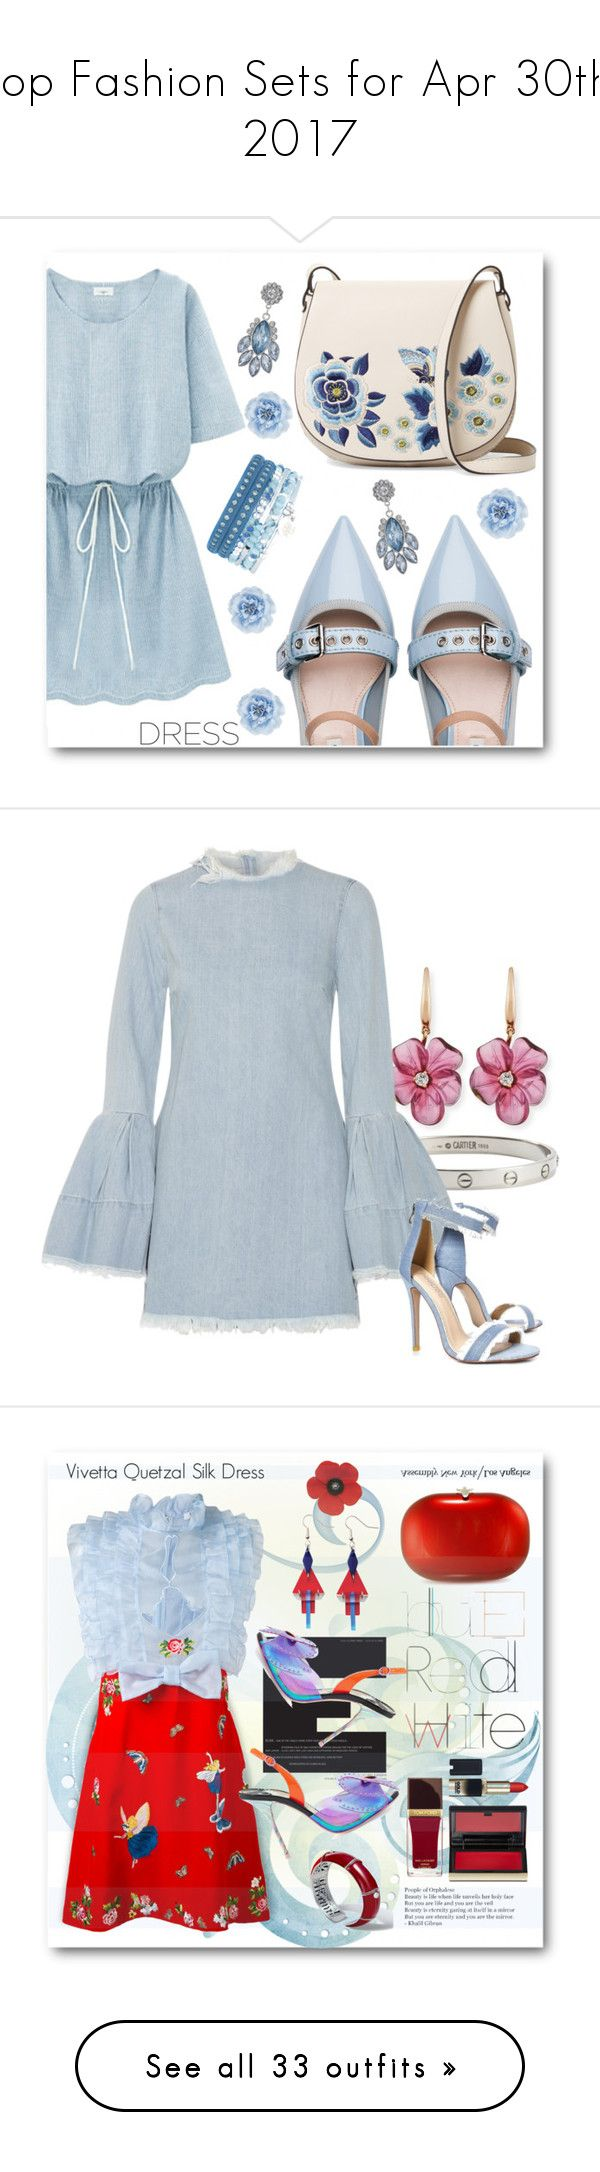 """""""Top Fashion Sets for Apr 30th, 2017"""" by polyvore ❤ liked on Polyvore featuring Miu Miu, French Connection, Monsoon, dress, dreamydresses, Cartier, Rina Limor, Marques'Almeida, Boohoo and Jeffrey Levinson"""